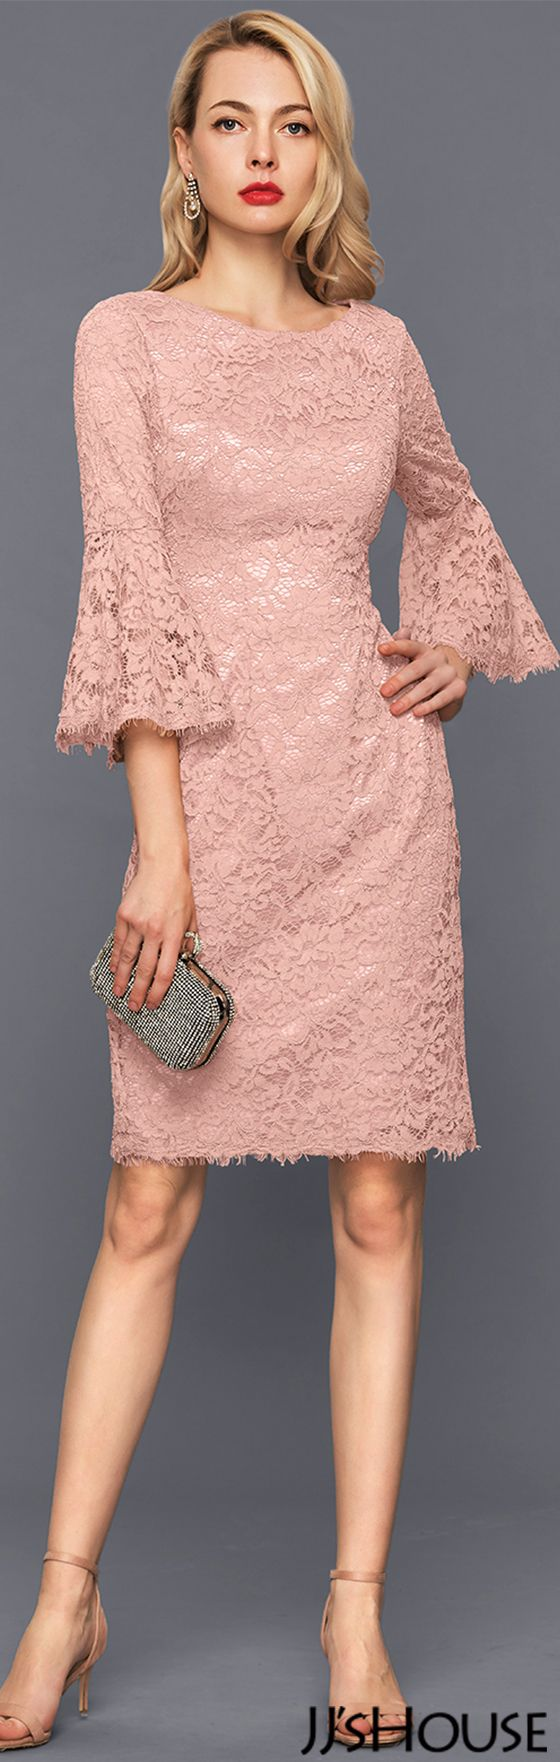 Sheath/Column Scoop Neck Knee-Length Lace Cocktail Dress#JJsHouse #Cocktail dresses